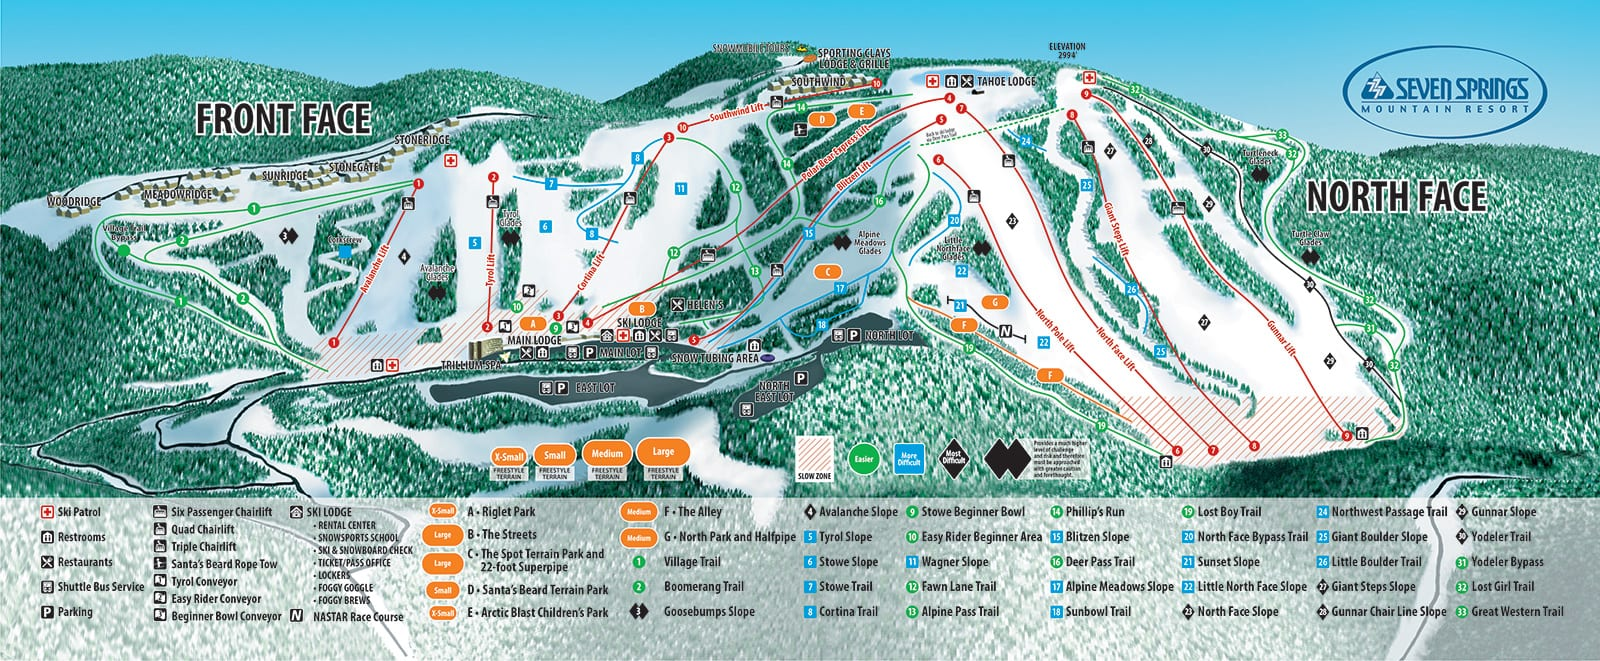 Skiing & Snowboarding Trail Map